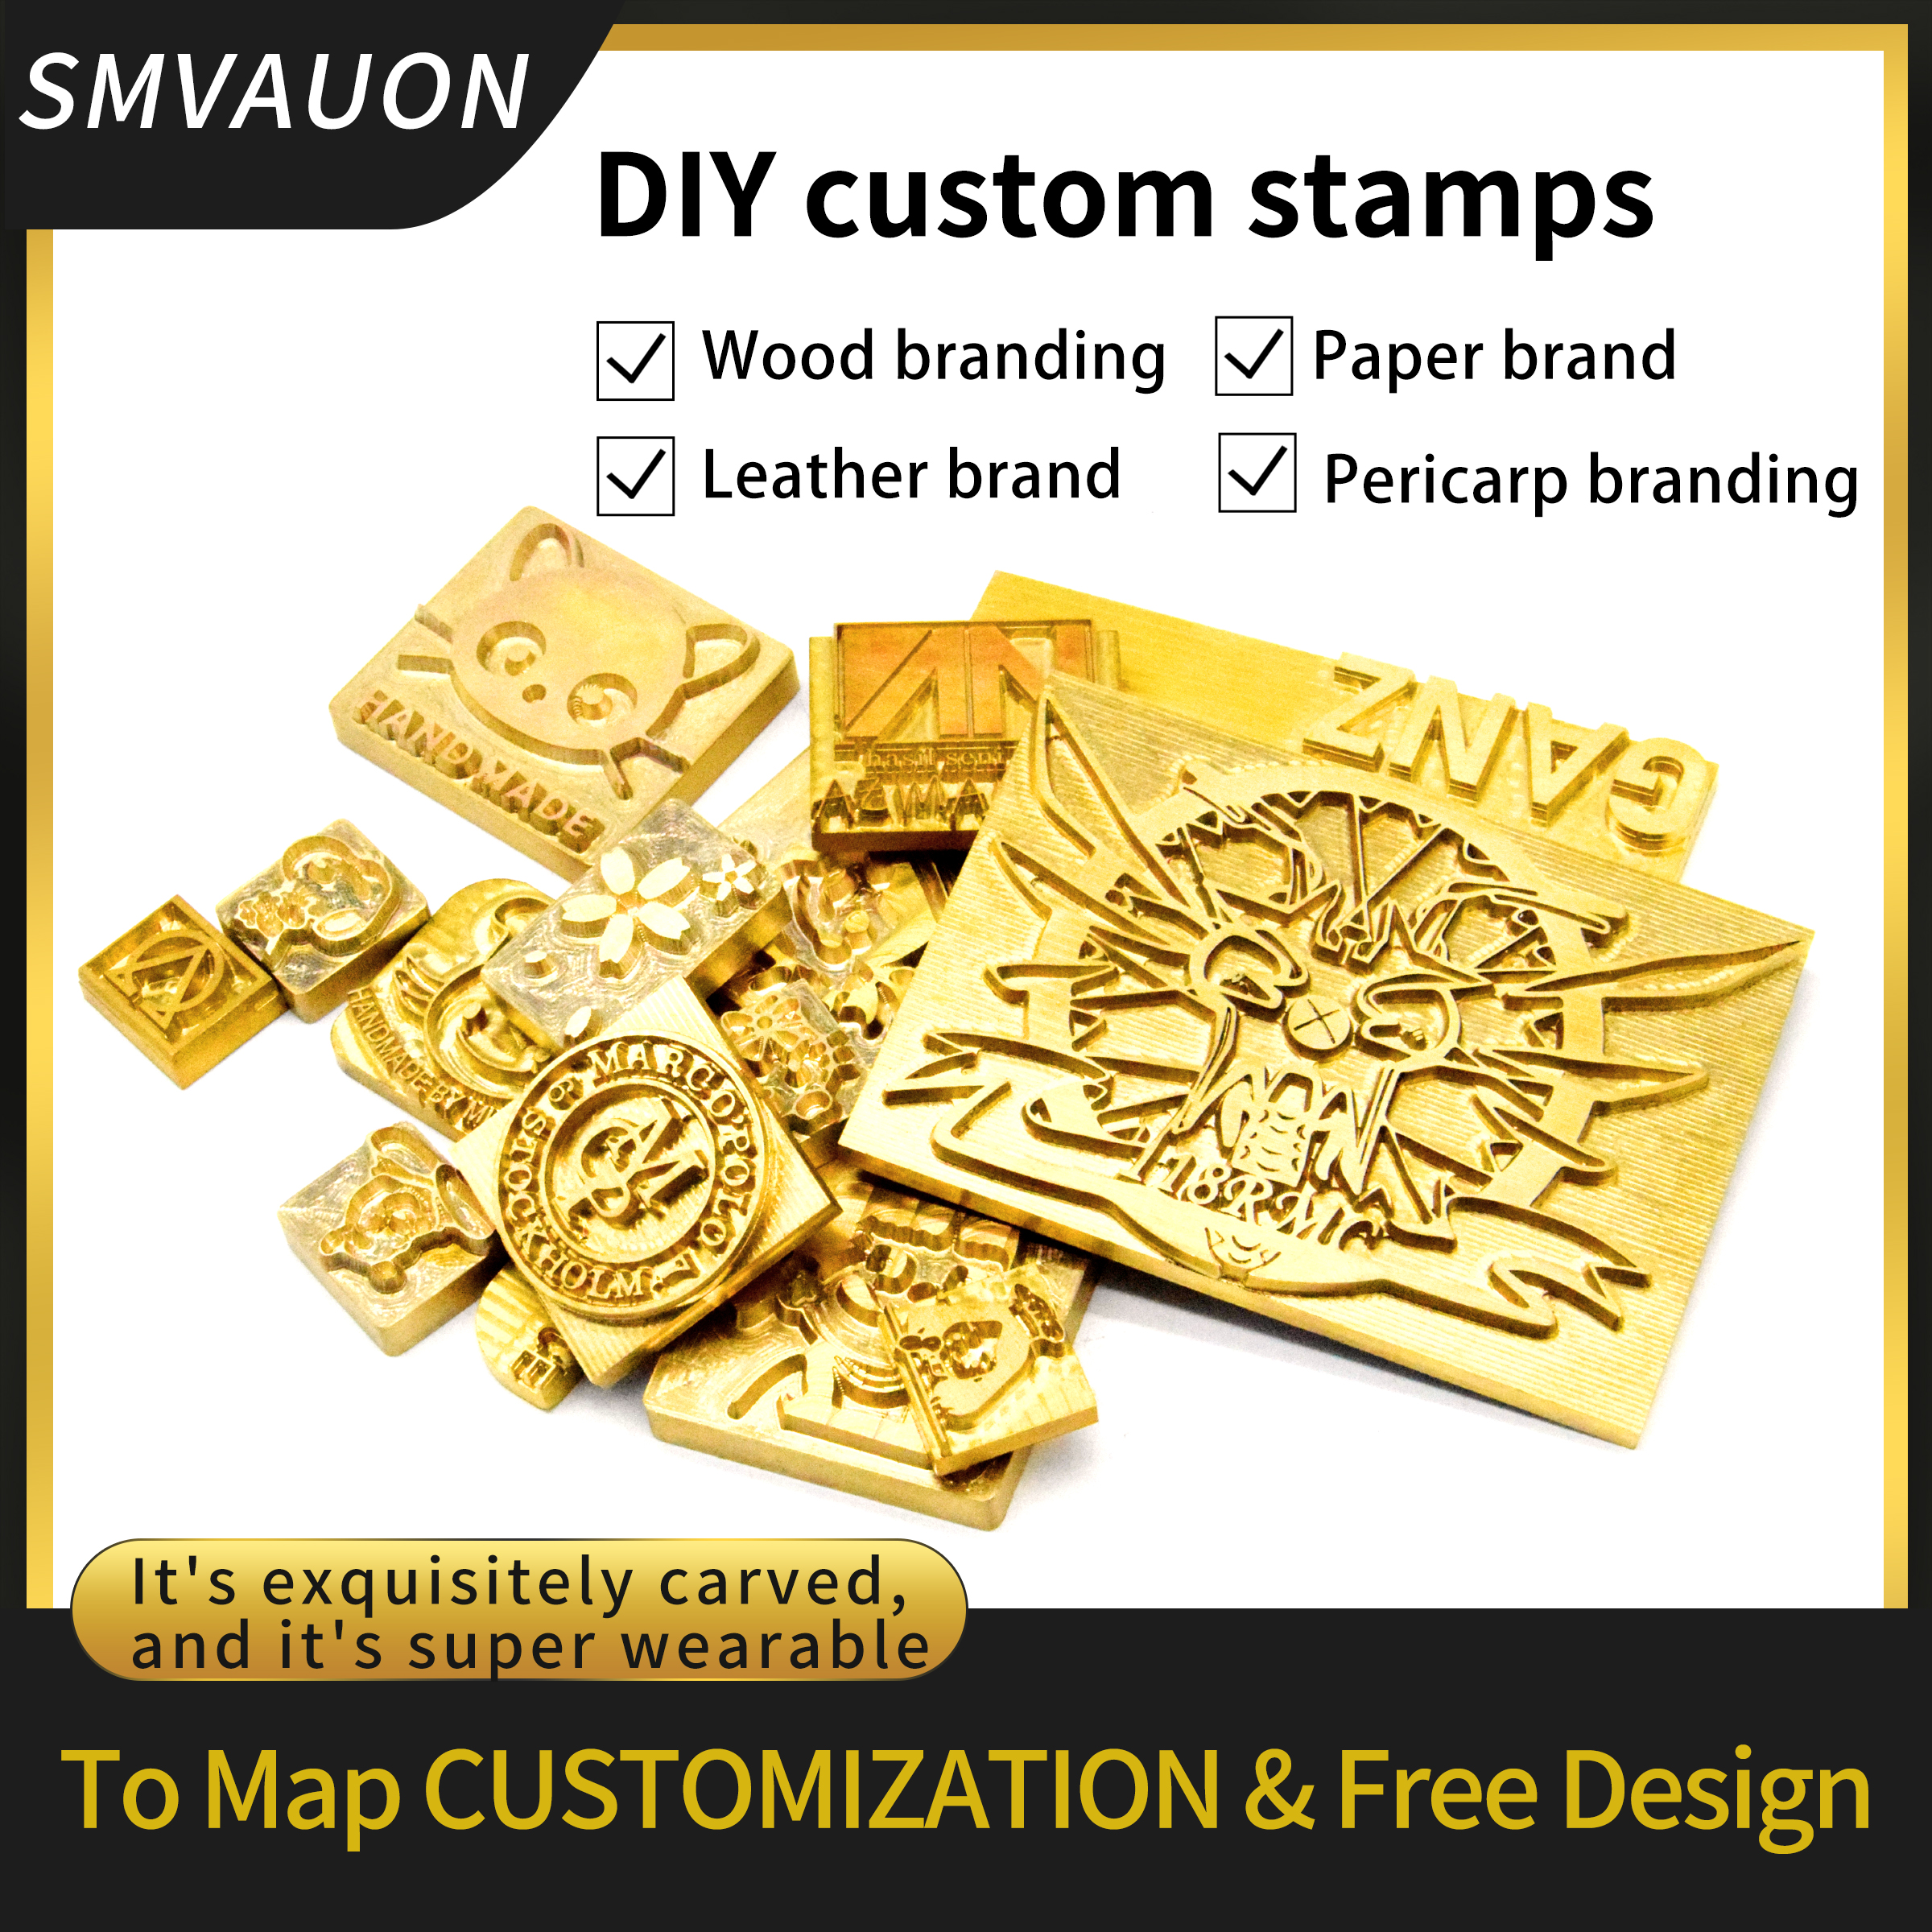 Customized LOGO Leather Stamp Copper Brass Wood Paper Skin Bread Cake Die Heating Emboss Mold Letter Metal Stamp Brand Iron Skin